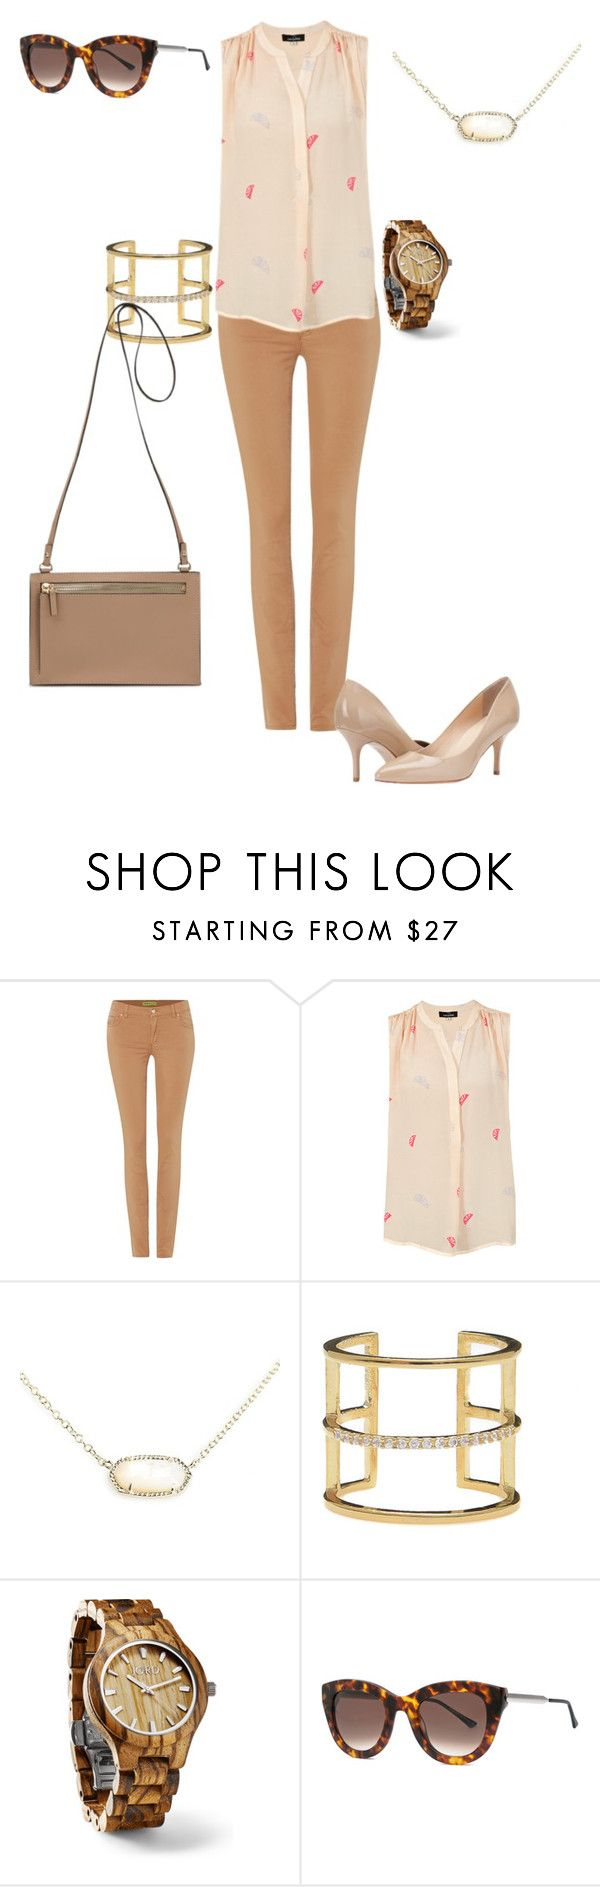 """Nudes all day #ukies"" by snyder-stephanie-anne on Polyvore featuring Versace, Mercy Delta, Kendra Scott, Jeweliq, Fieldcrest and Thierry Lasry"